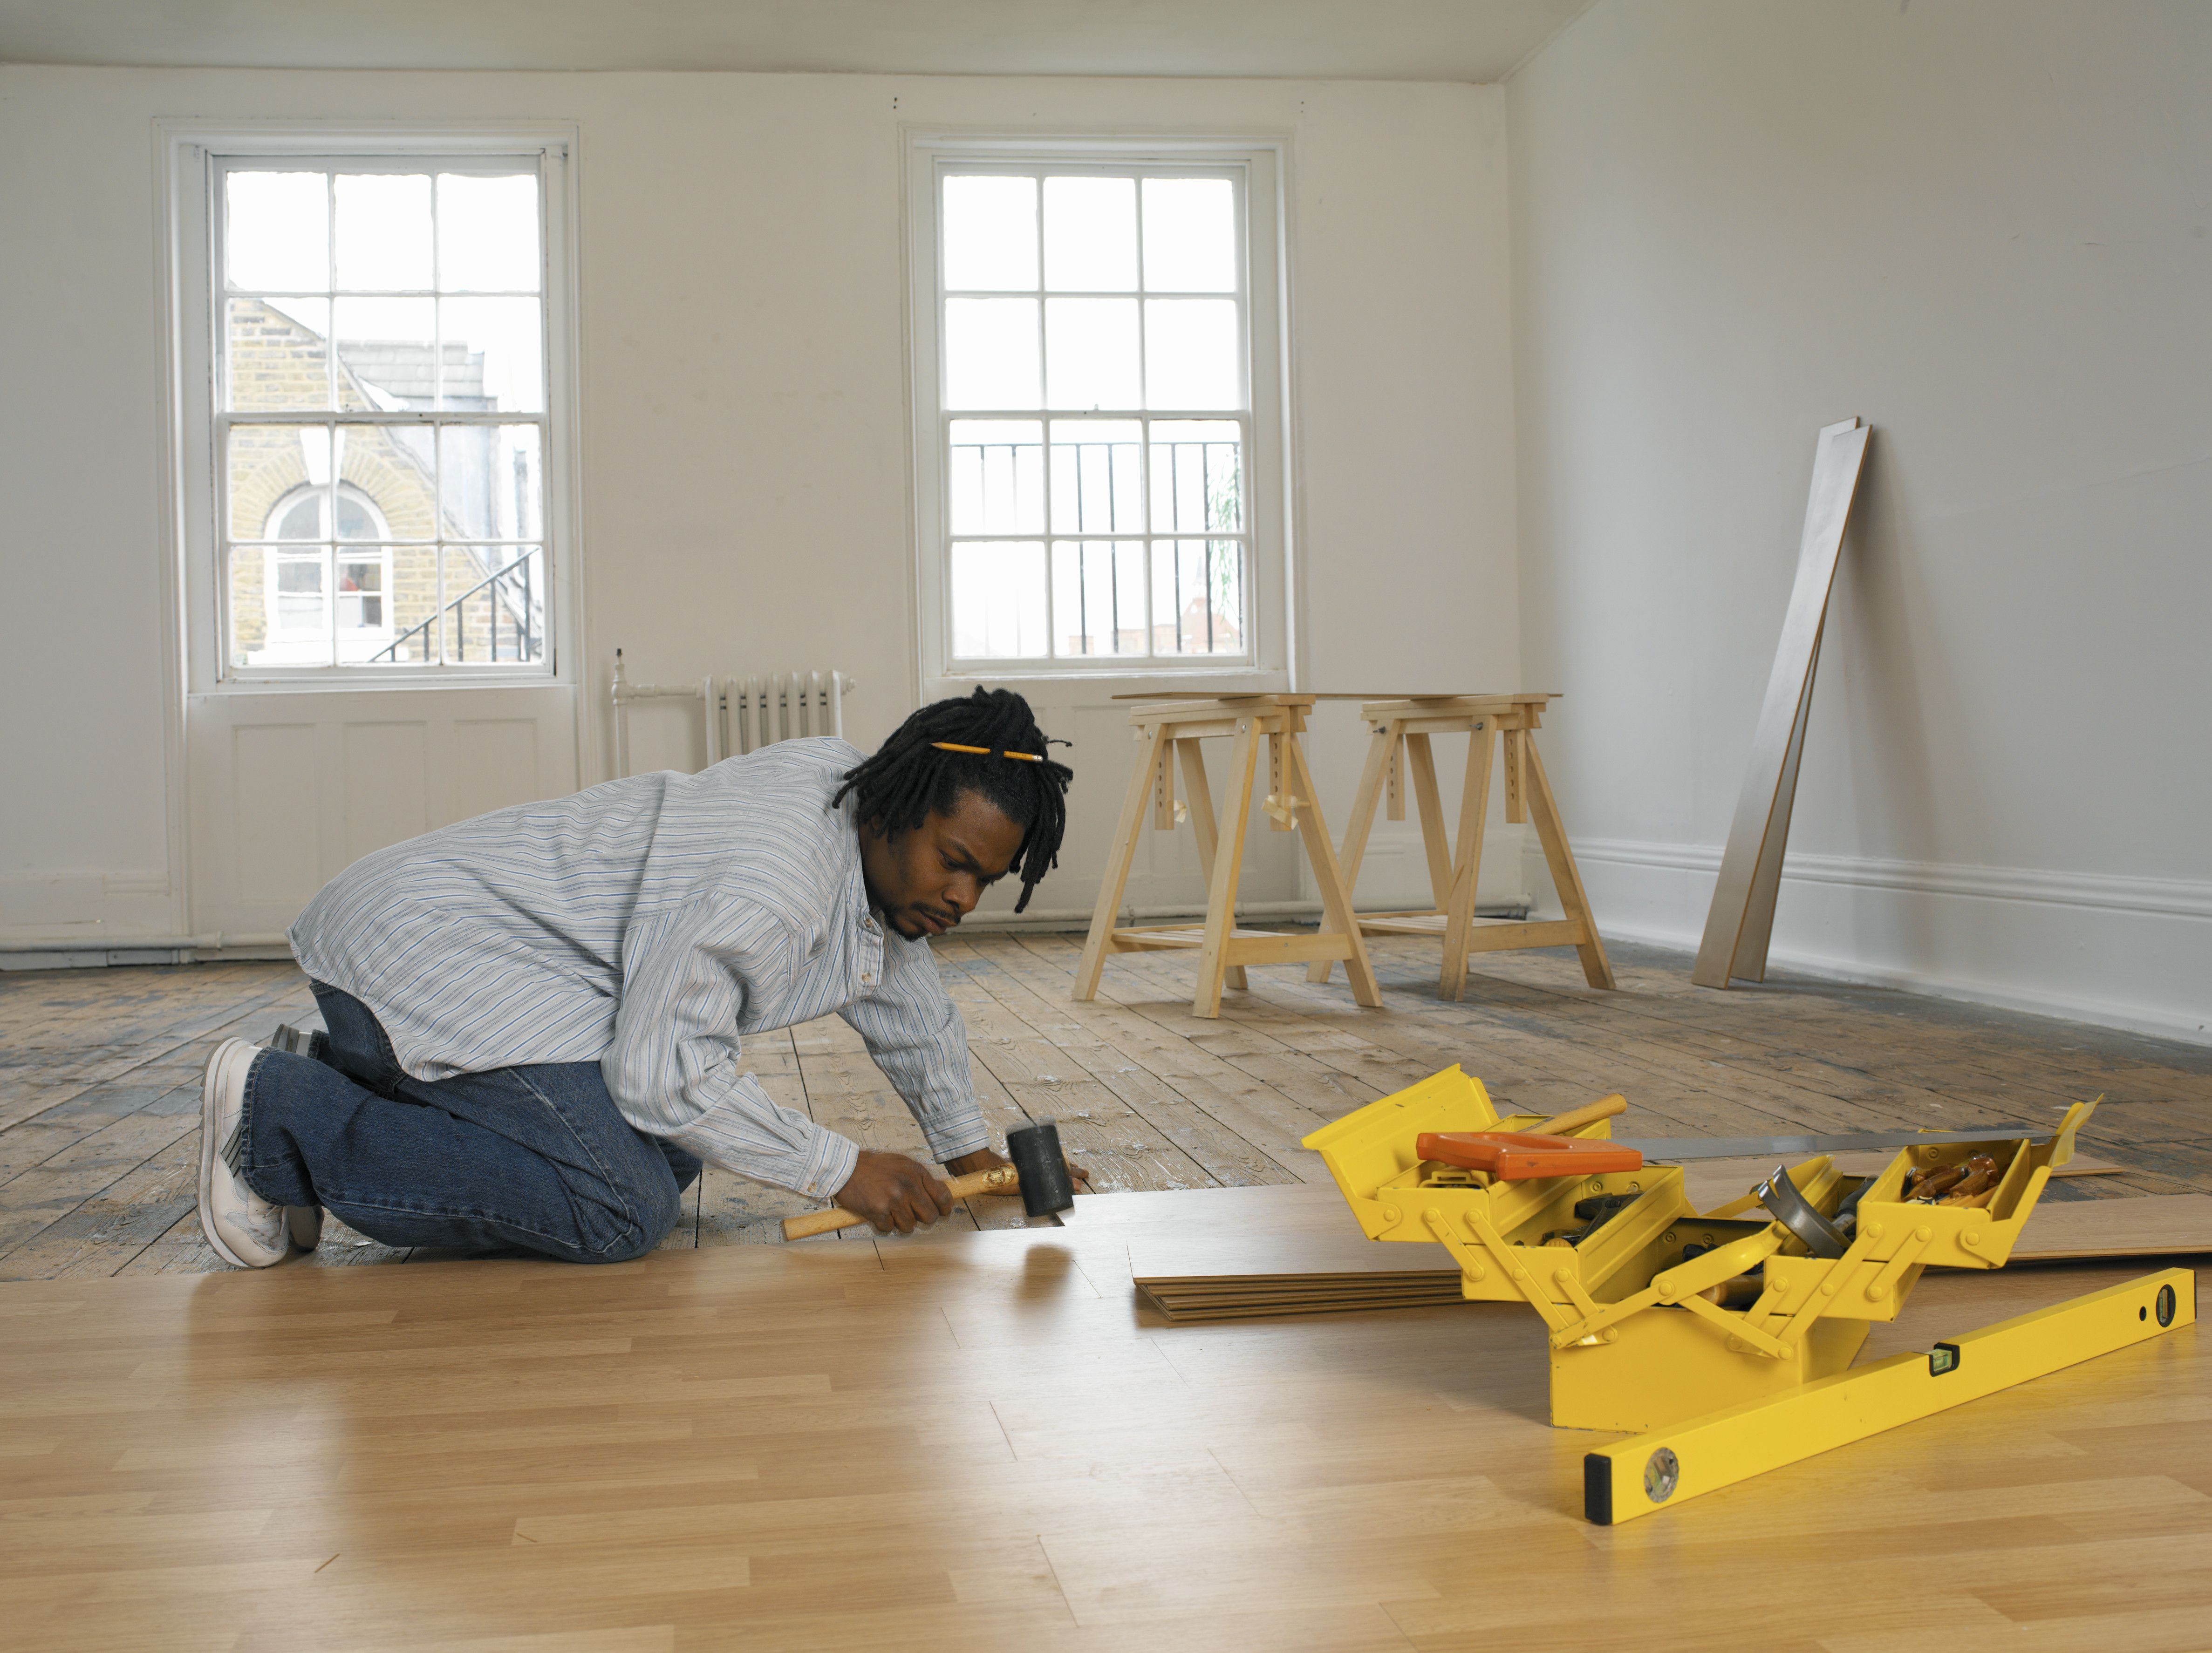 engineered hardwood flooring prices canada of ikea flooring review overview throughout young man laying floor 200199826 001 57e96a973df78c690f719440